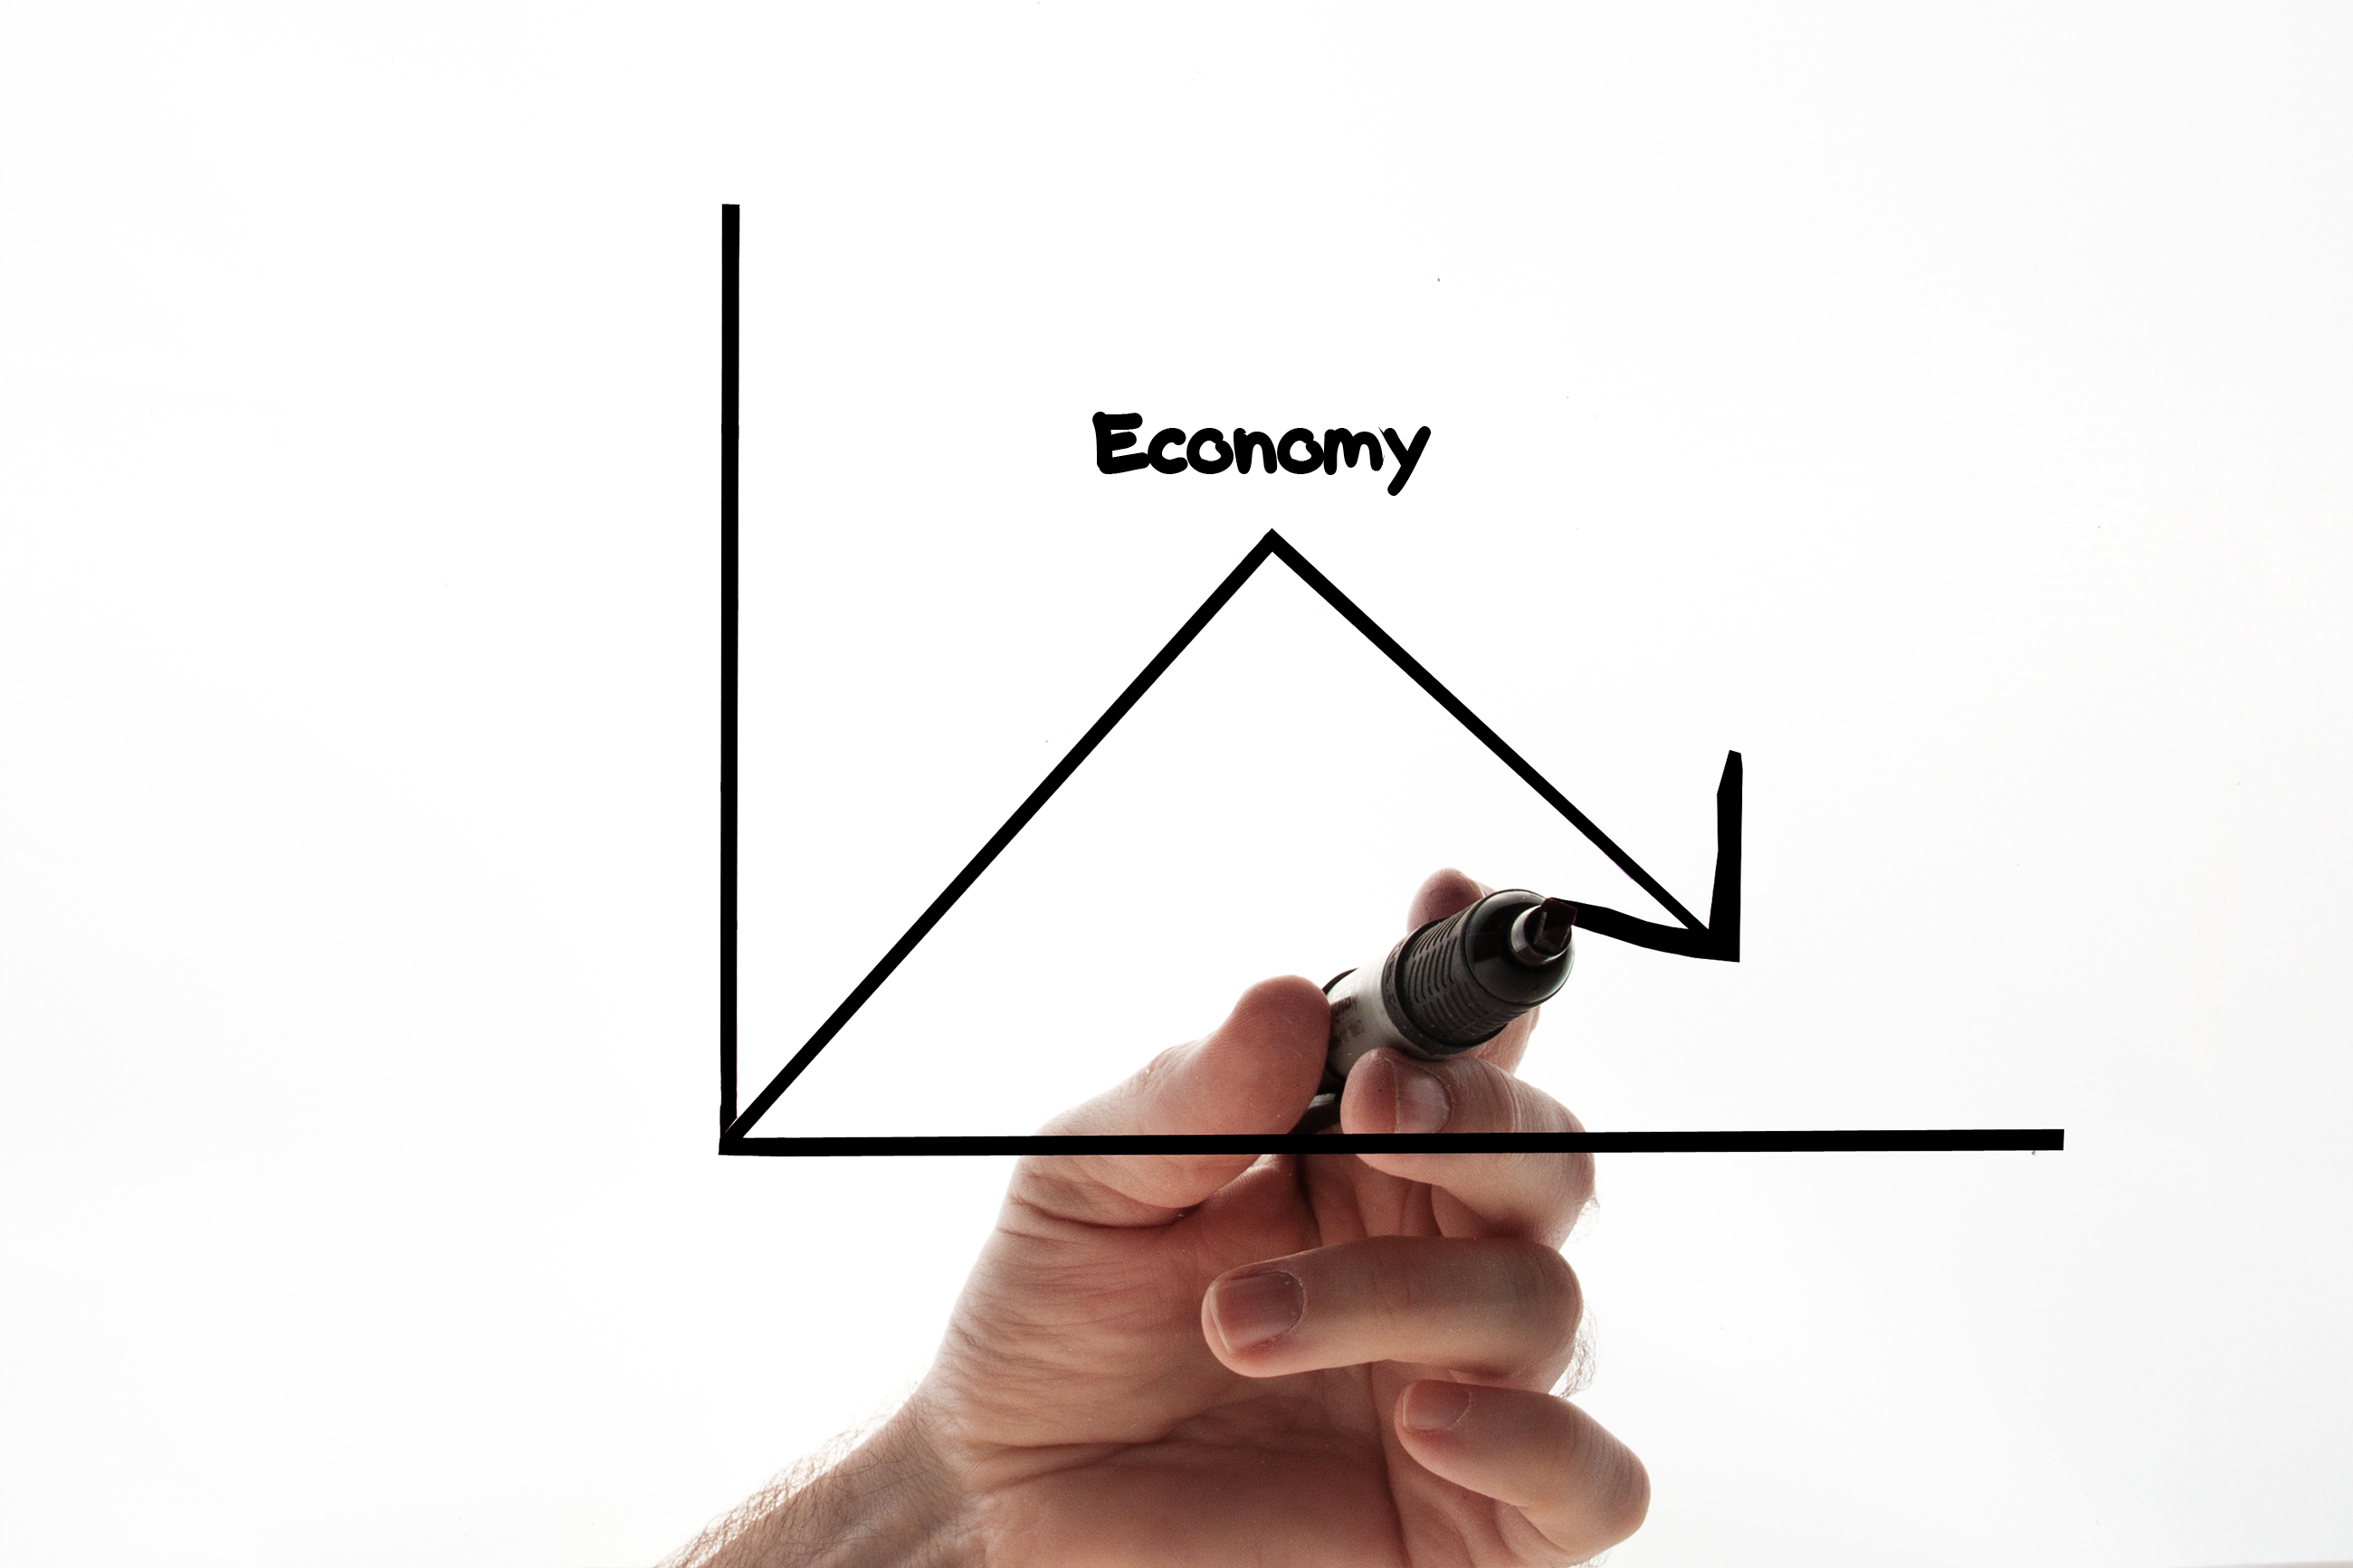 Economy graph, Analysis, Performance, Increase, Layout, HQ Photo